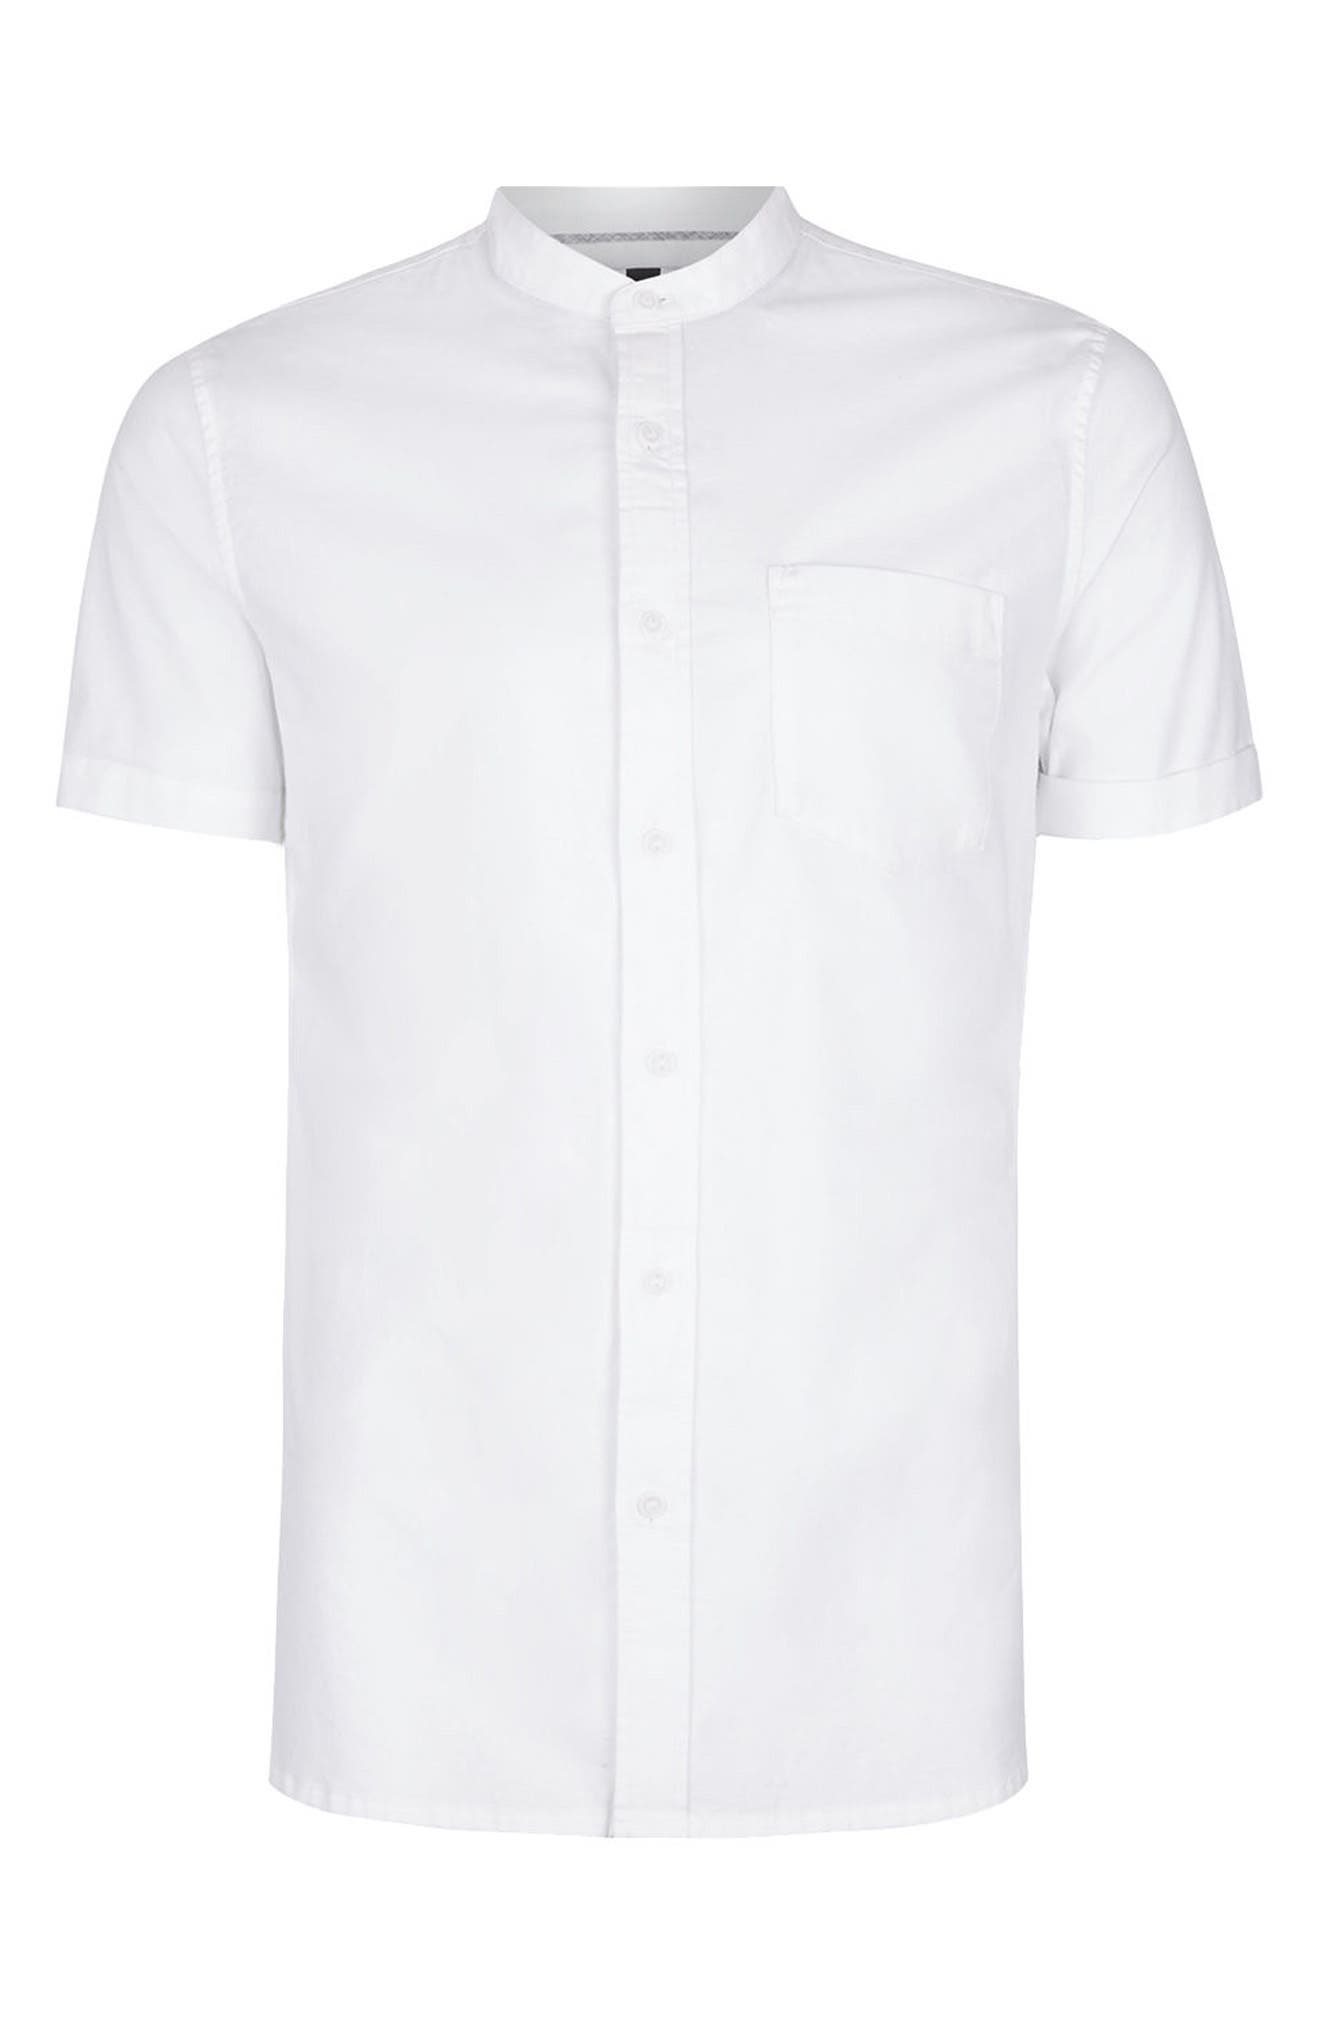 Stand Collar Oxford Shirt,                             Alternate thumbnail 4, color,                             WHITE